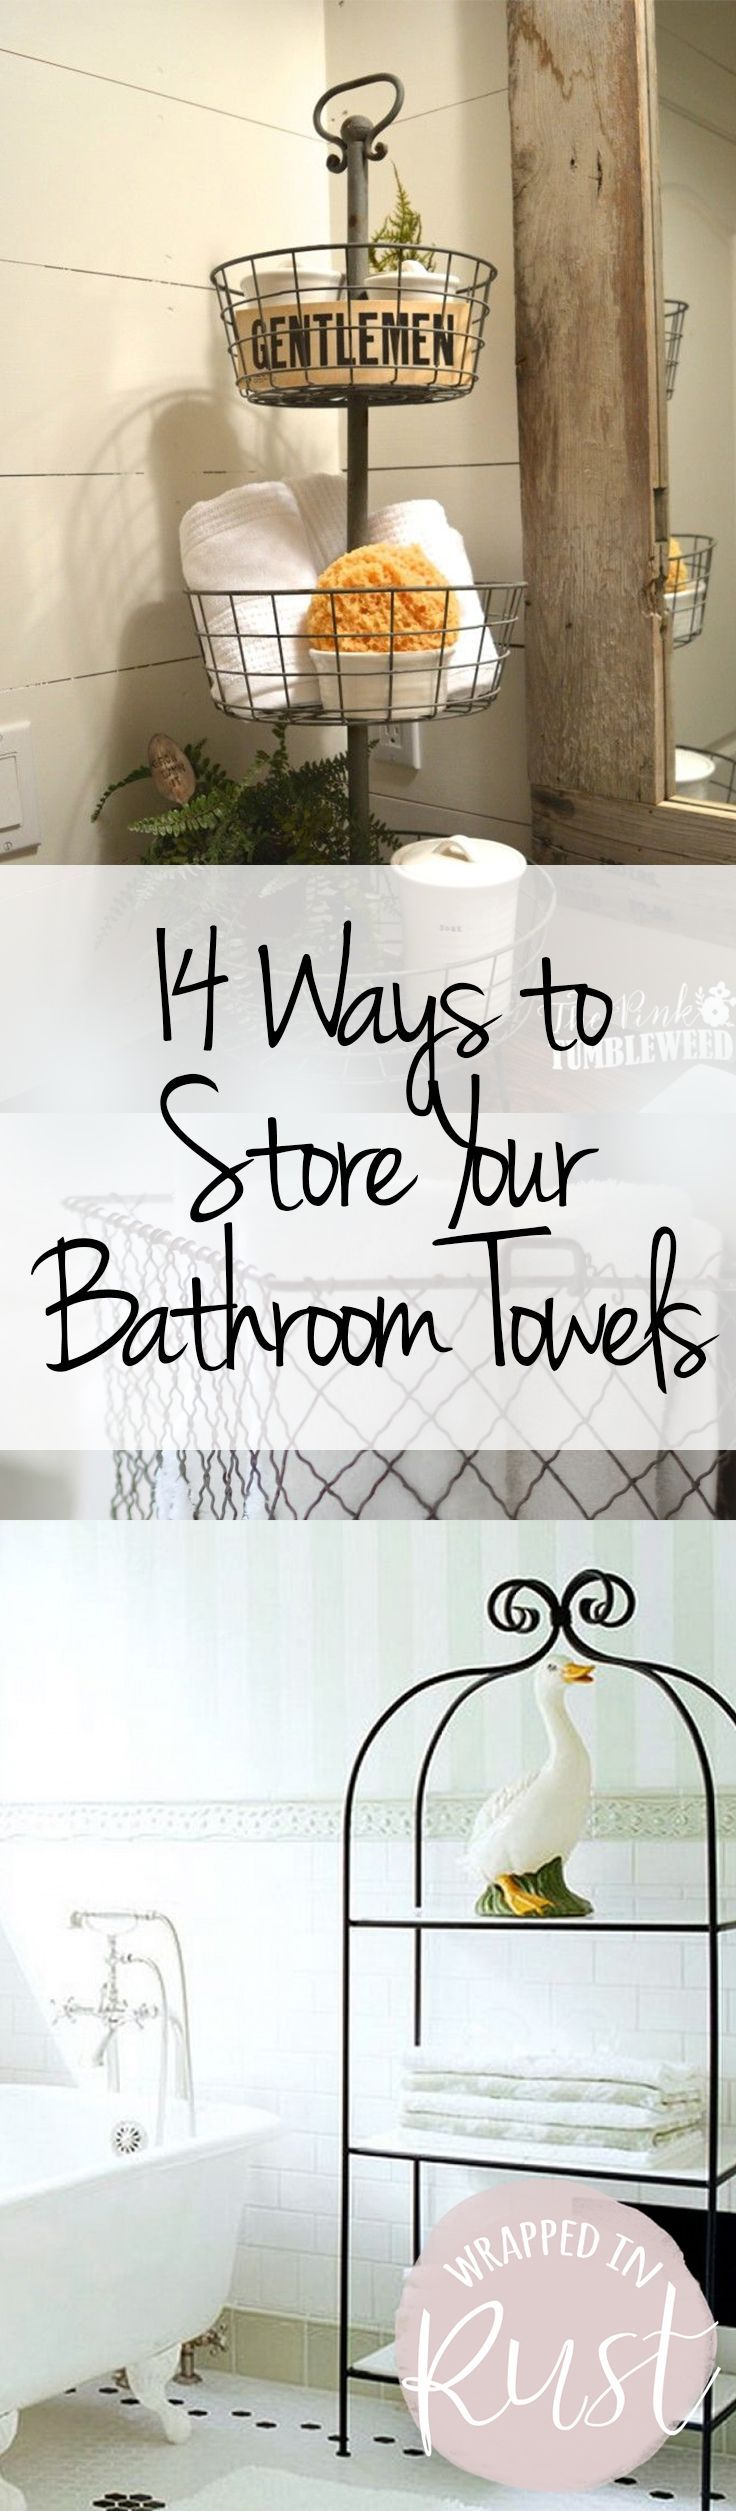 Bathroom storage for towels - 17 Best Ideas About Bathroom Towel Storage On Pinterest Towel Storage Bathroom Storage Units And Tall Bathroom Cabinets